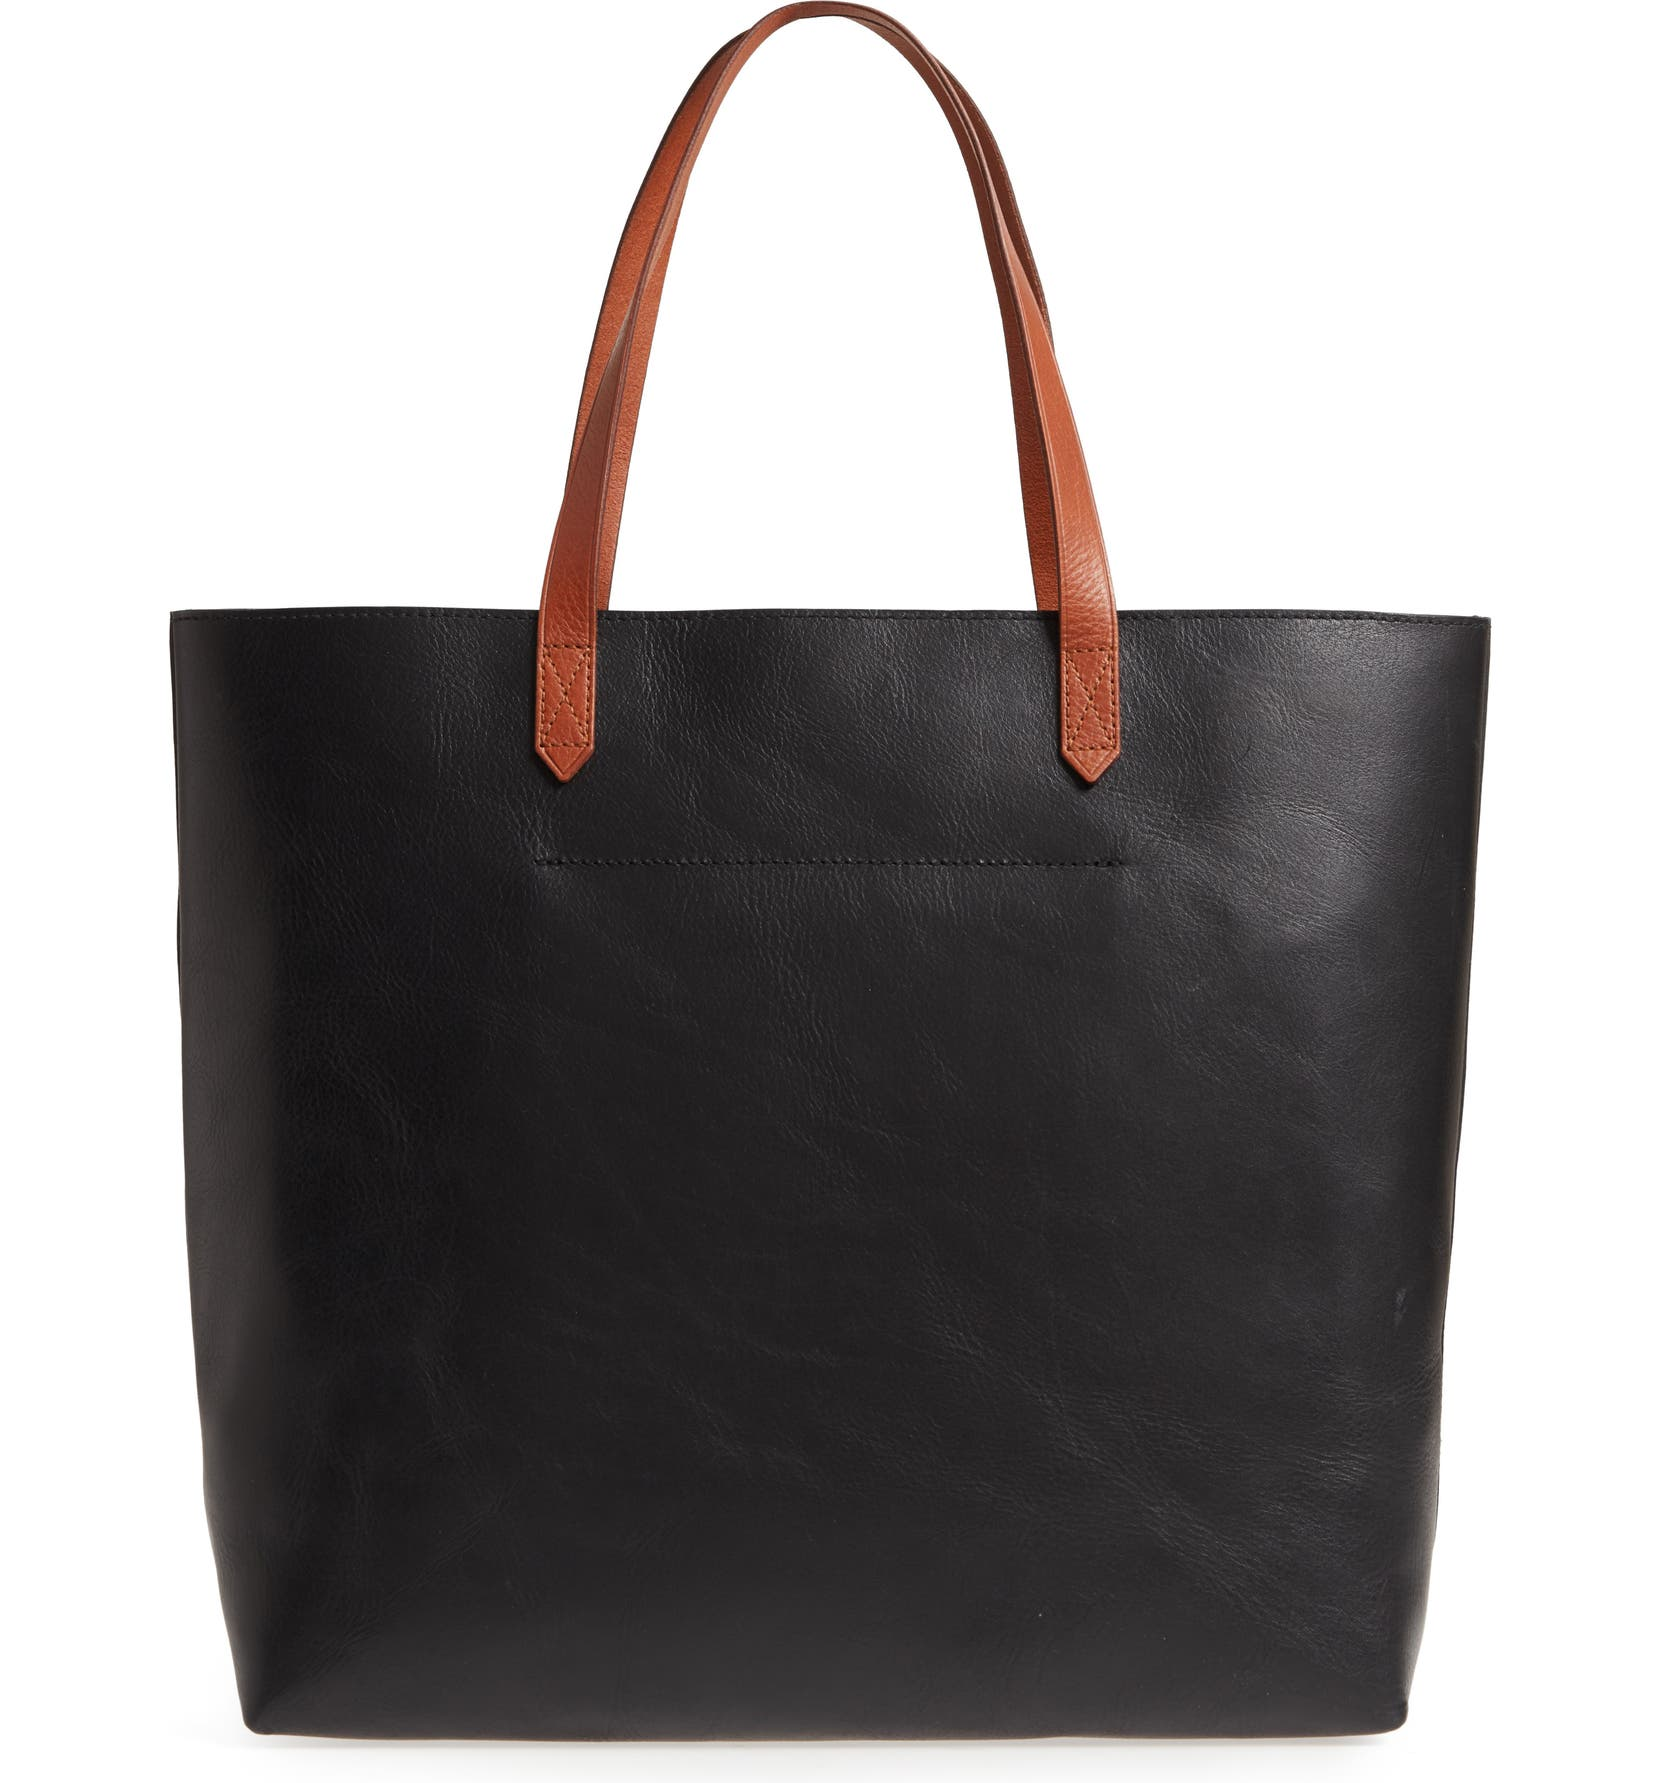 53772a737caf Madewell Zip Top Transport Leather Tote   Nordstrom